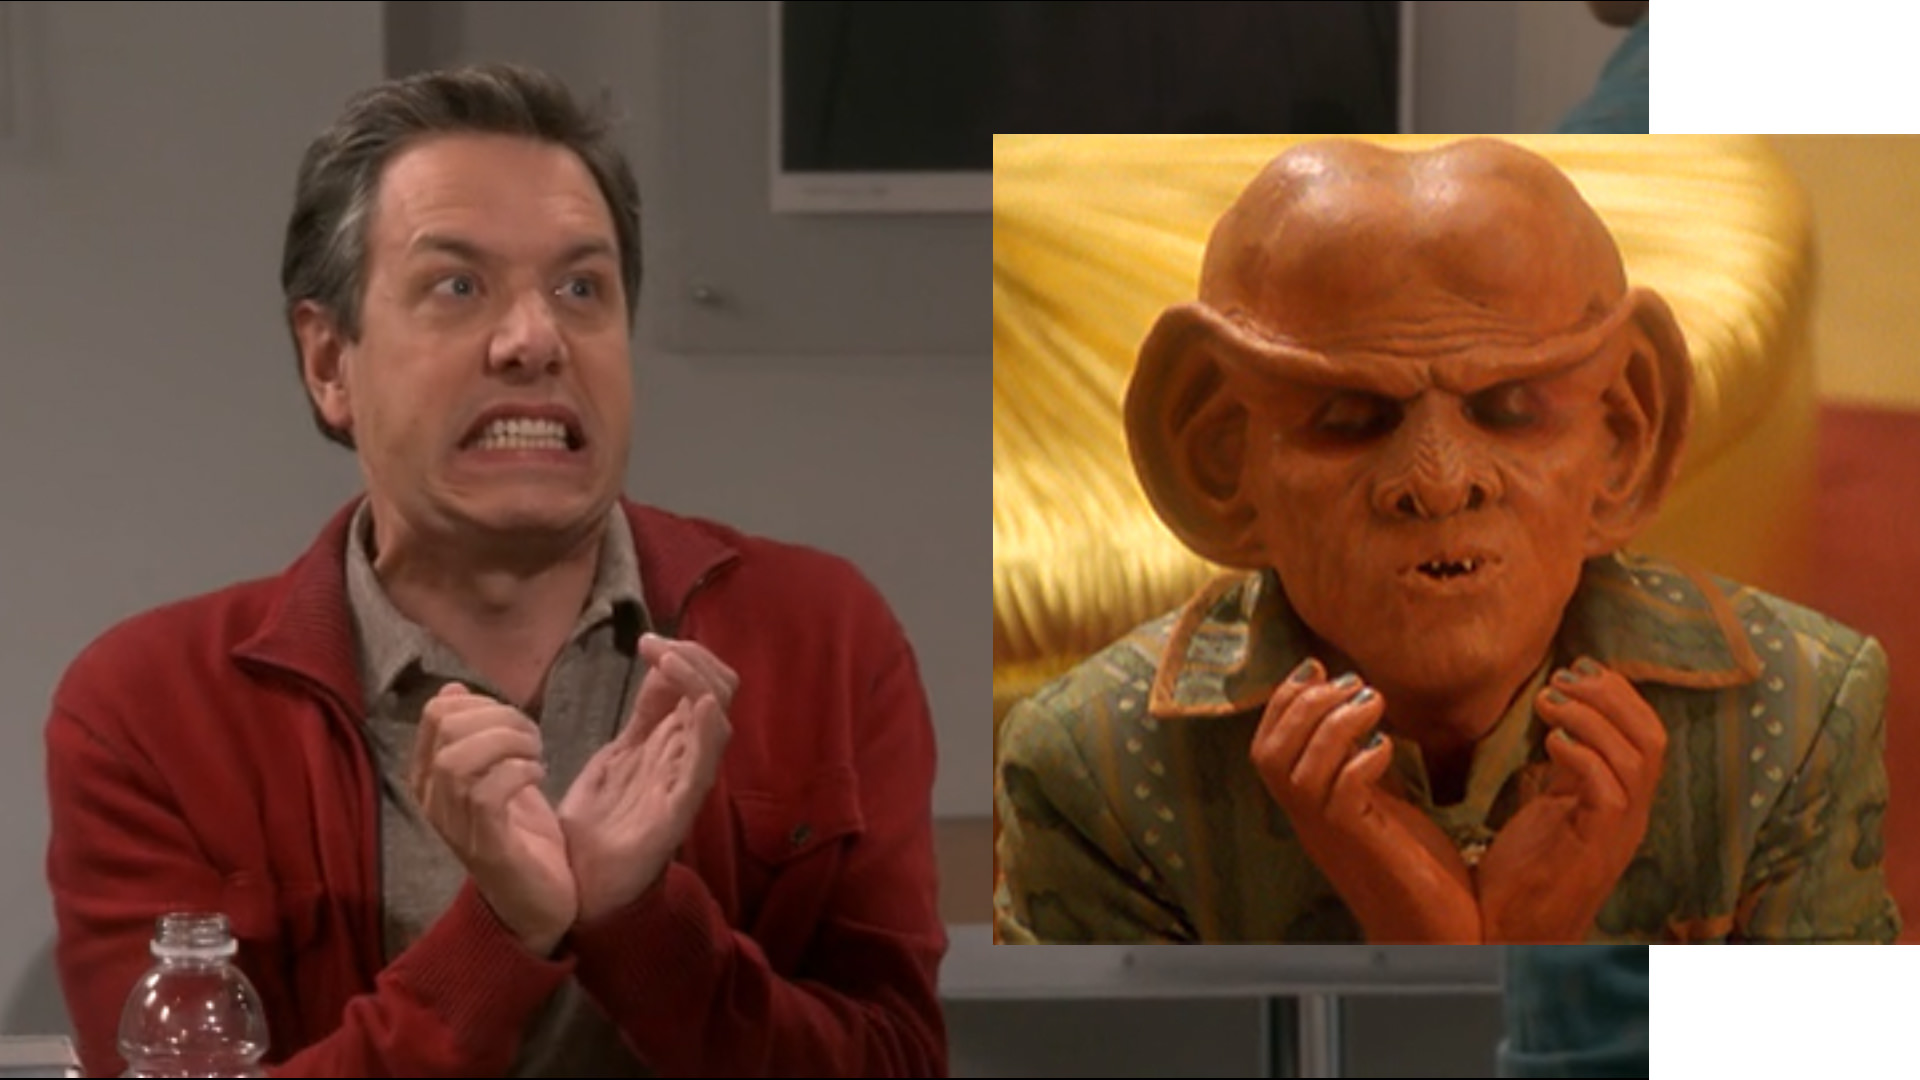 I noticed that Kripke made the Ferengi apology gesture in S11E08 1920x1080